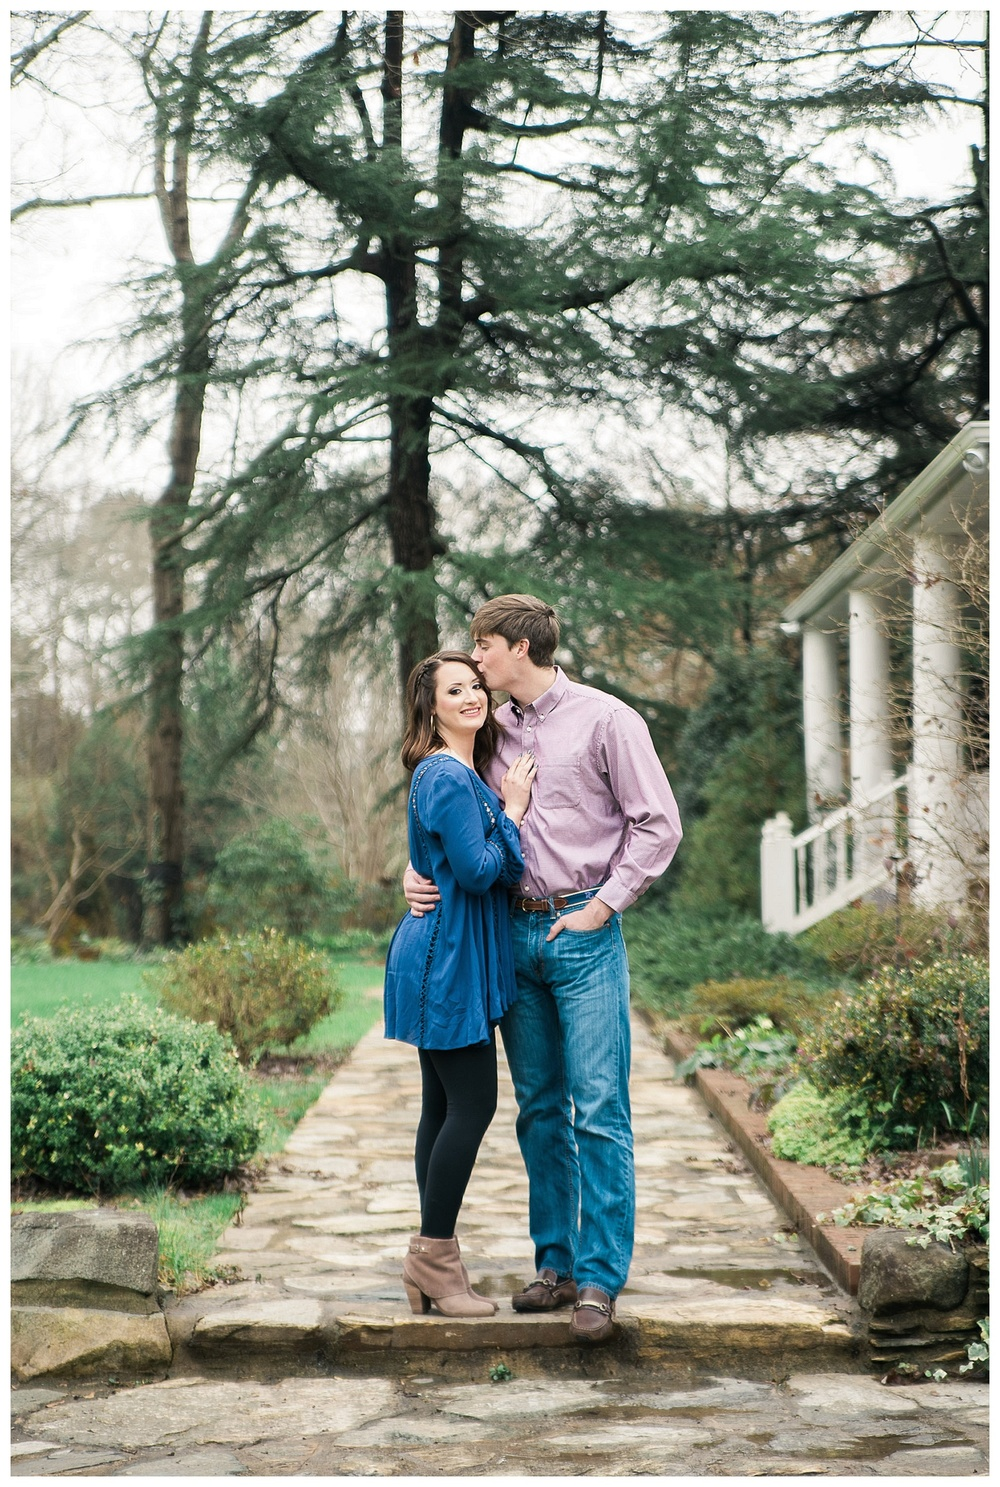 Ivy Place engagement portraits | Charlotte Wedding Photographer  - sMm Photography